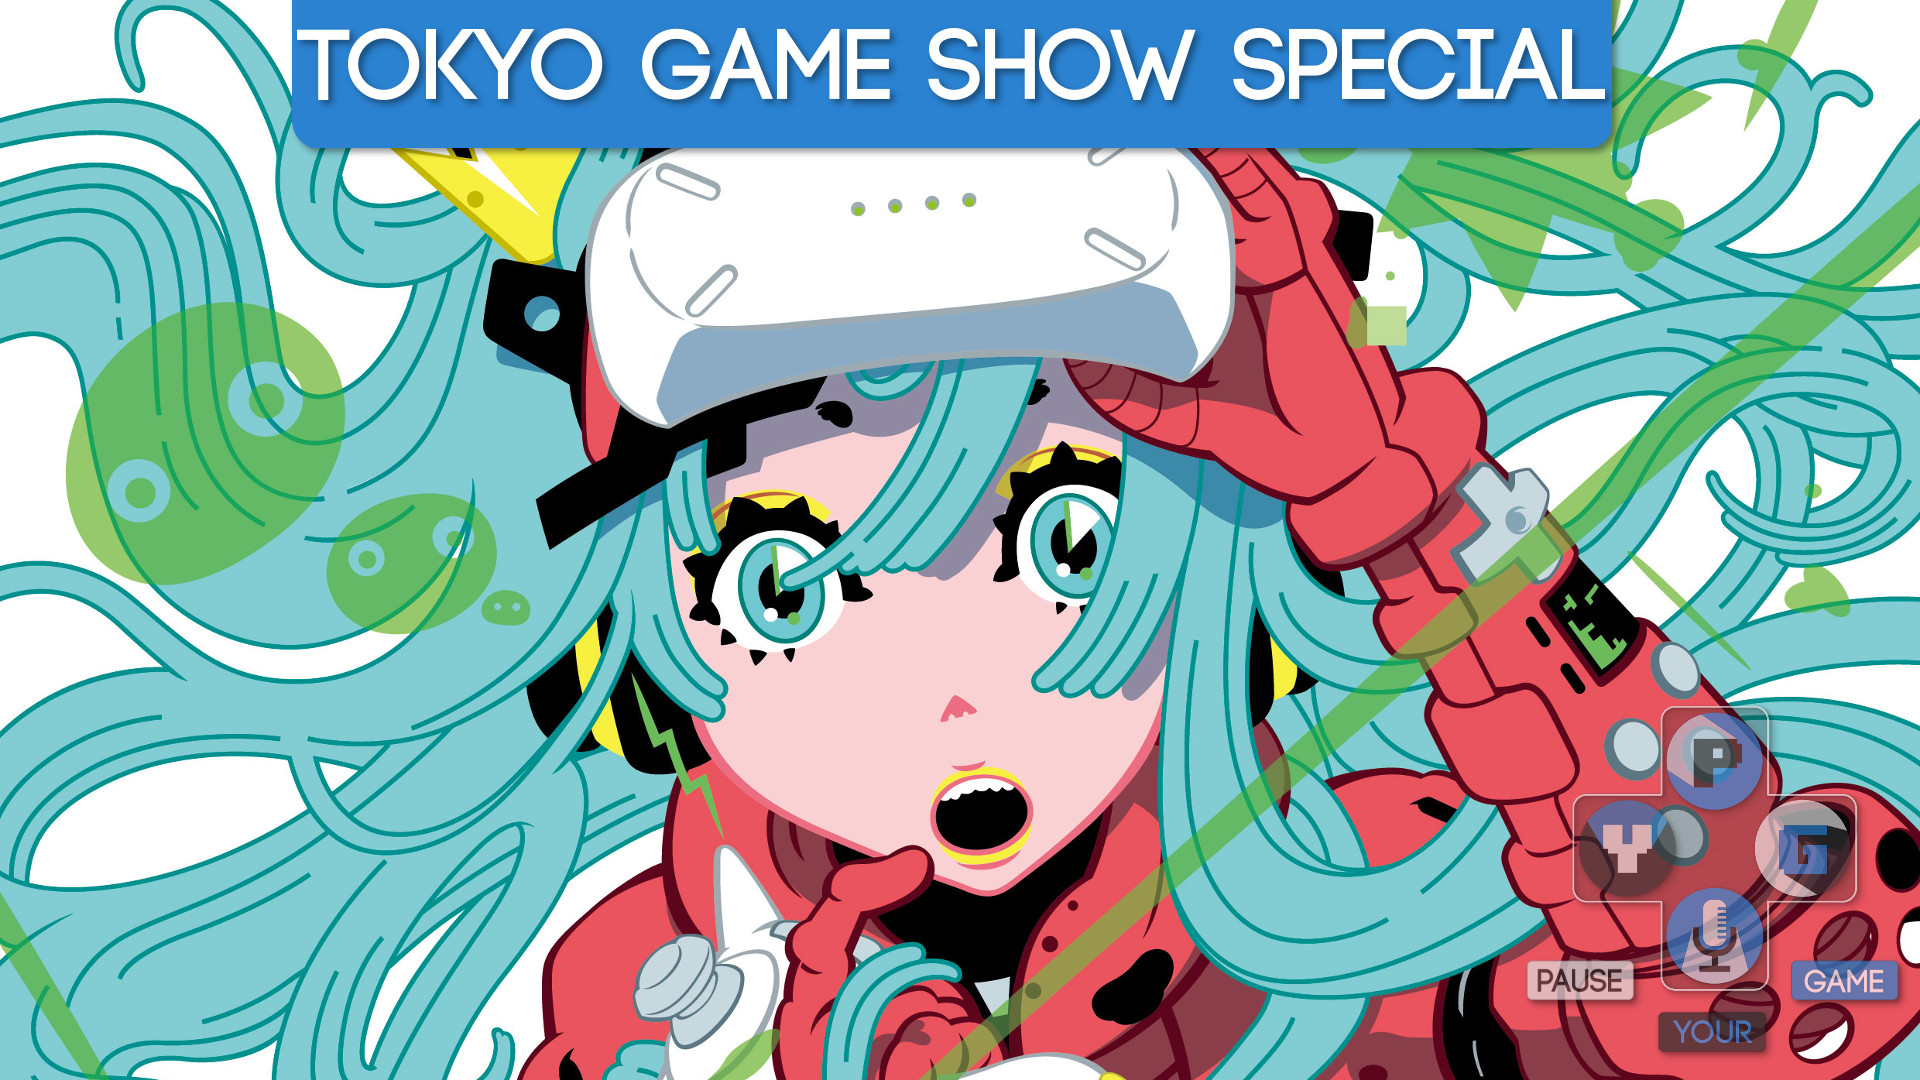 Special - Tokyo Game Show 2016